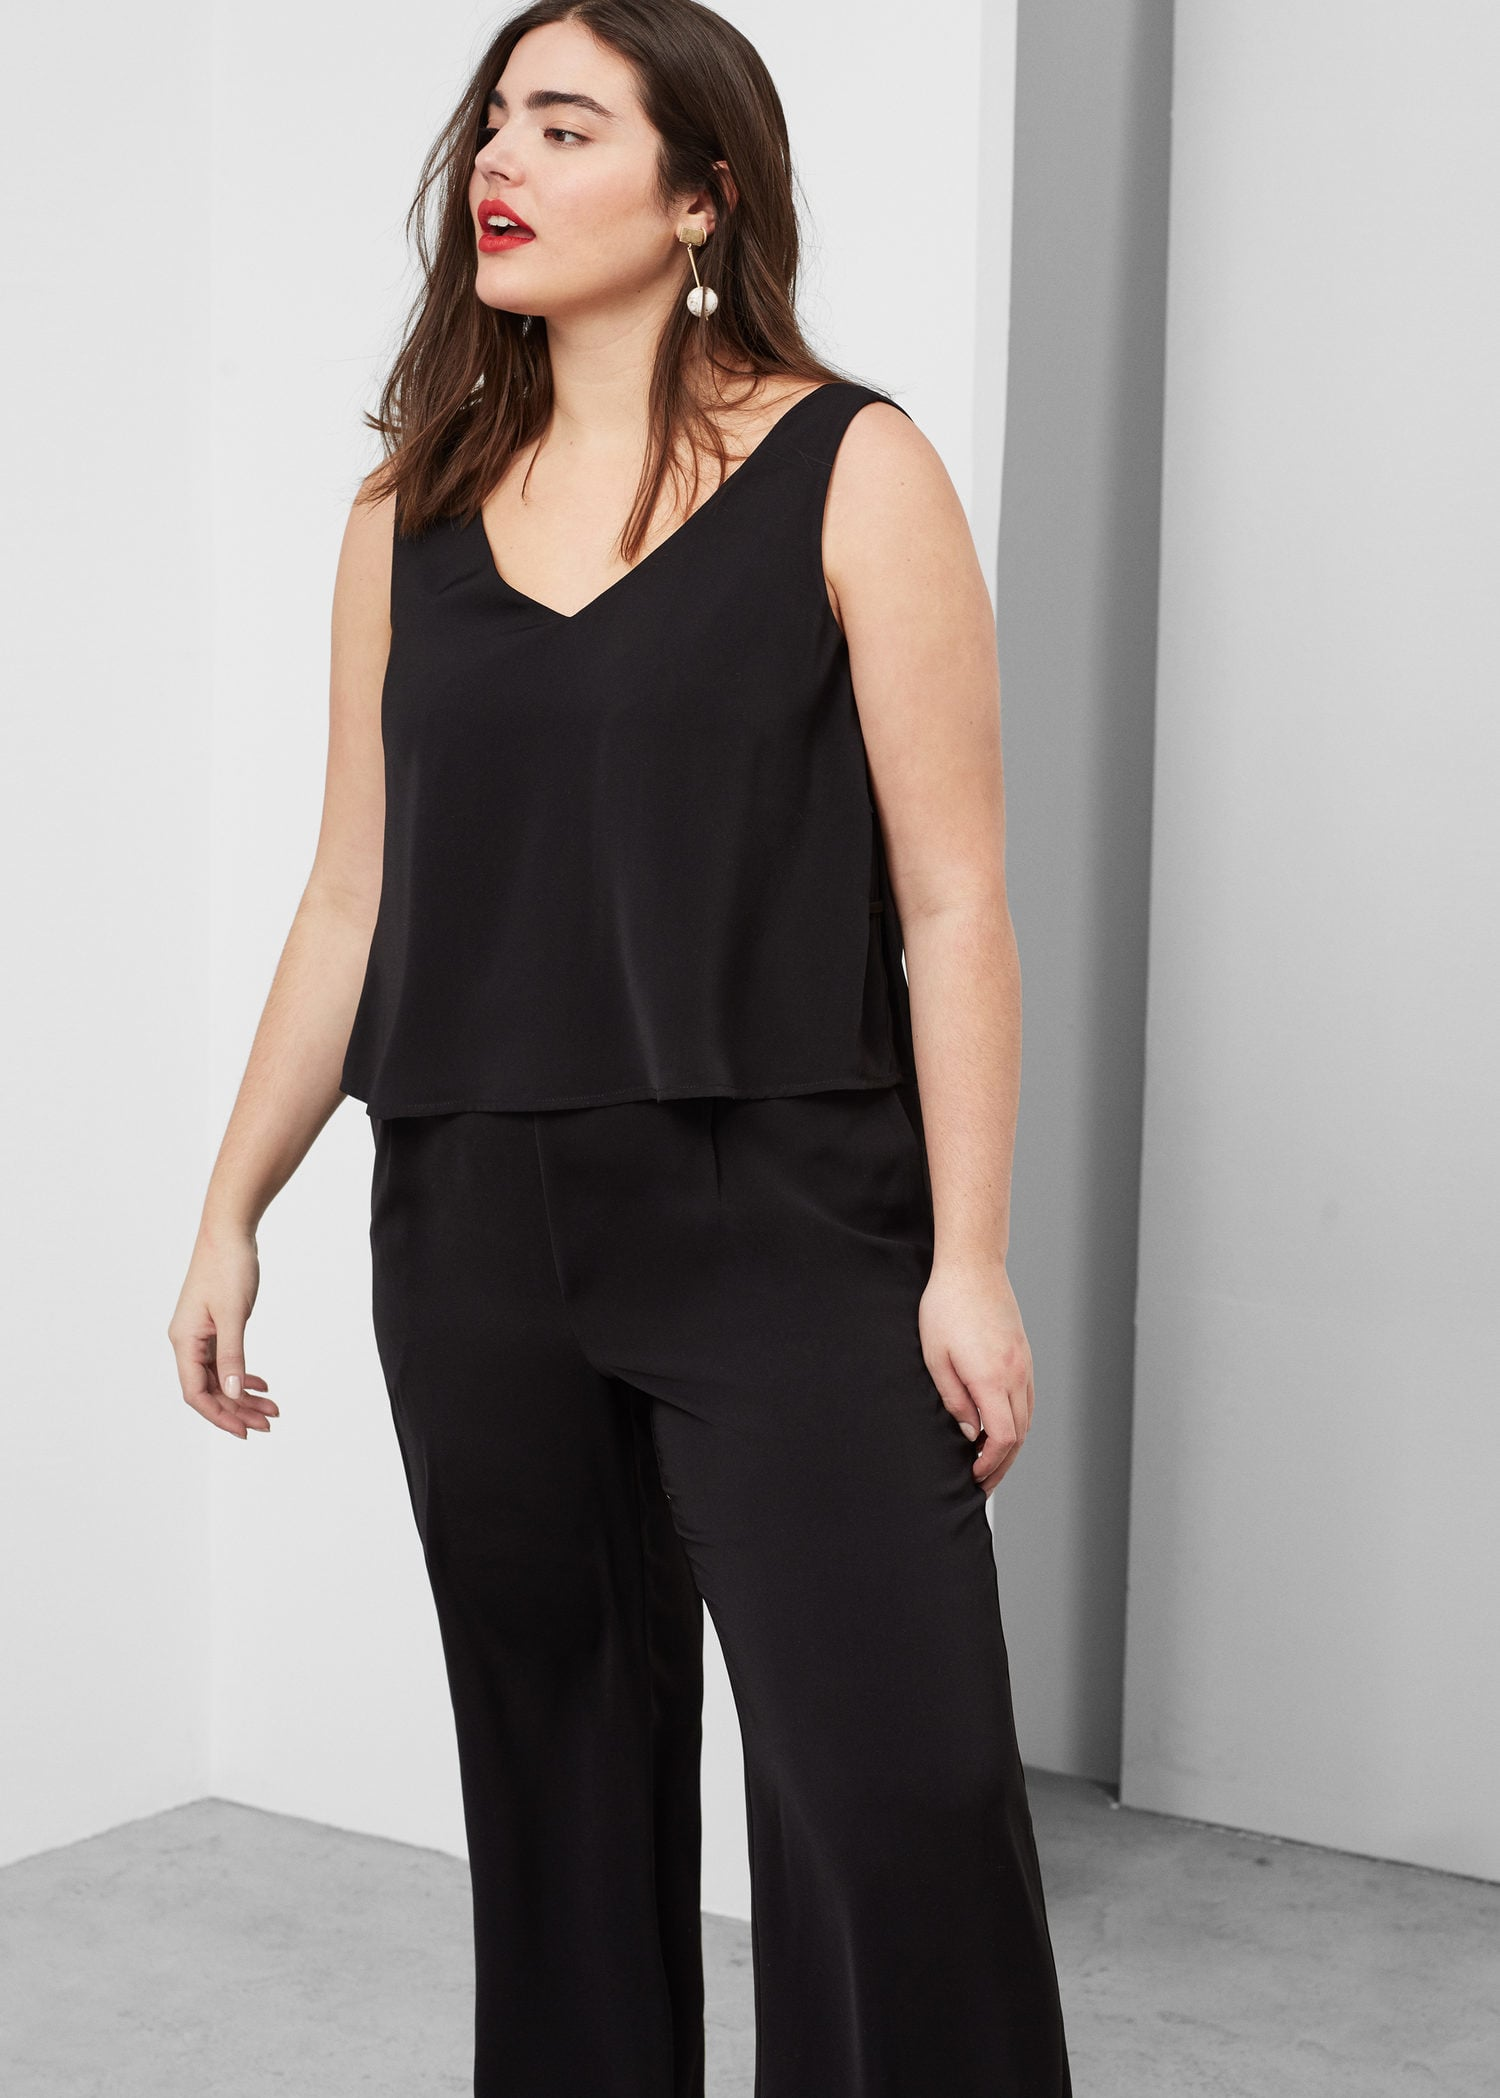 Flowy long jumpsuit - Jumpsuits Plus sizes | Violeta by MANGO USA